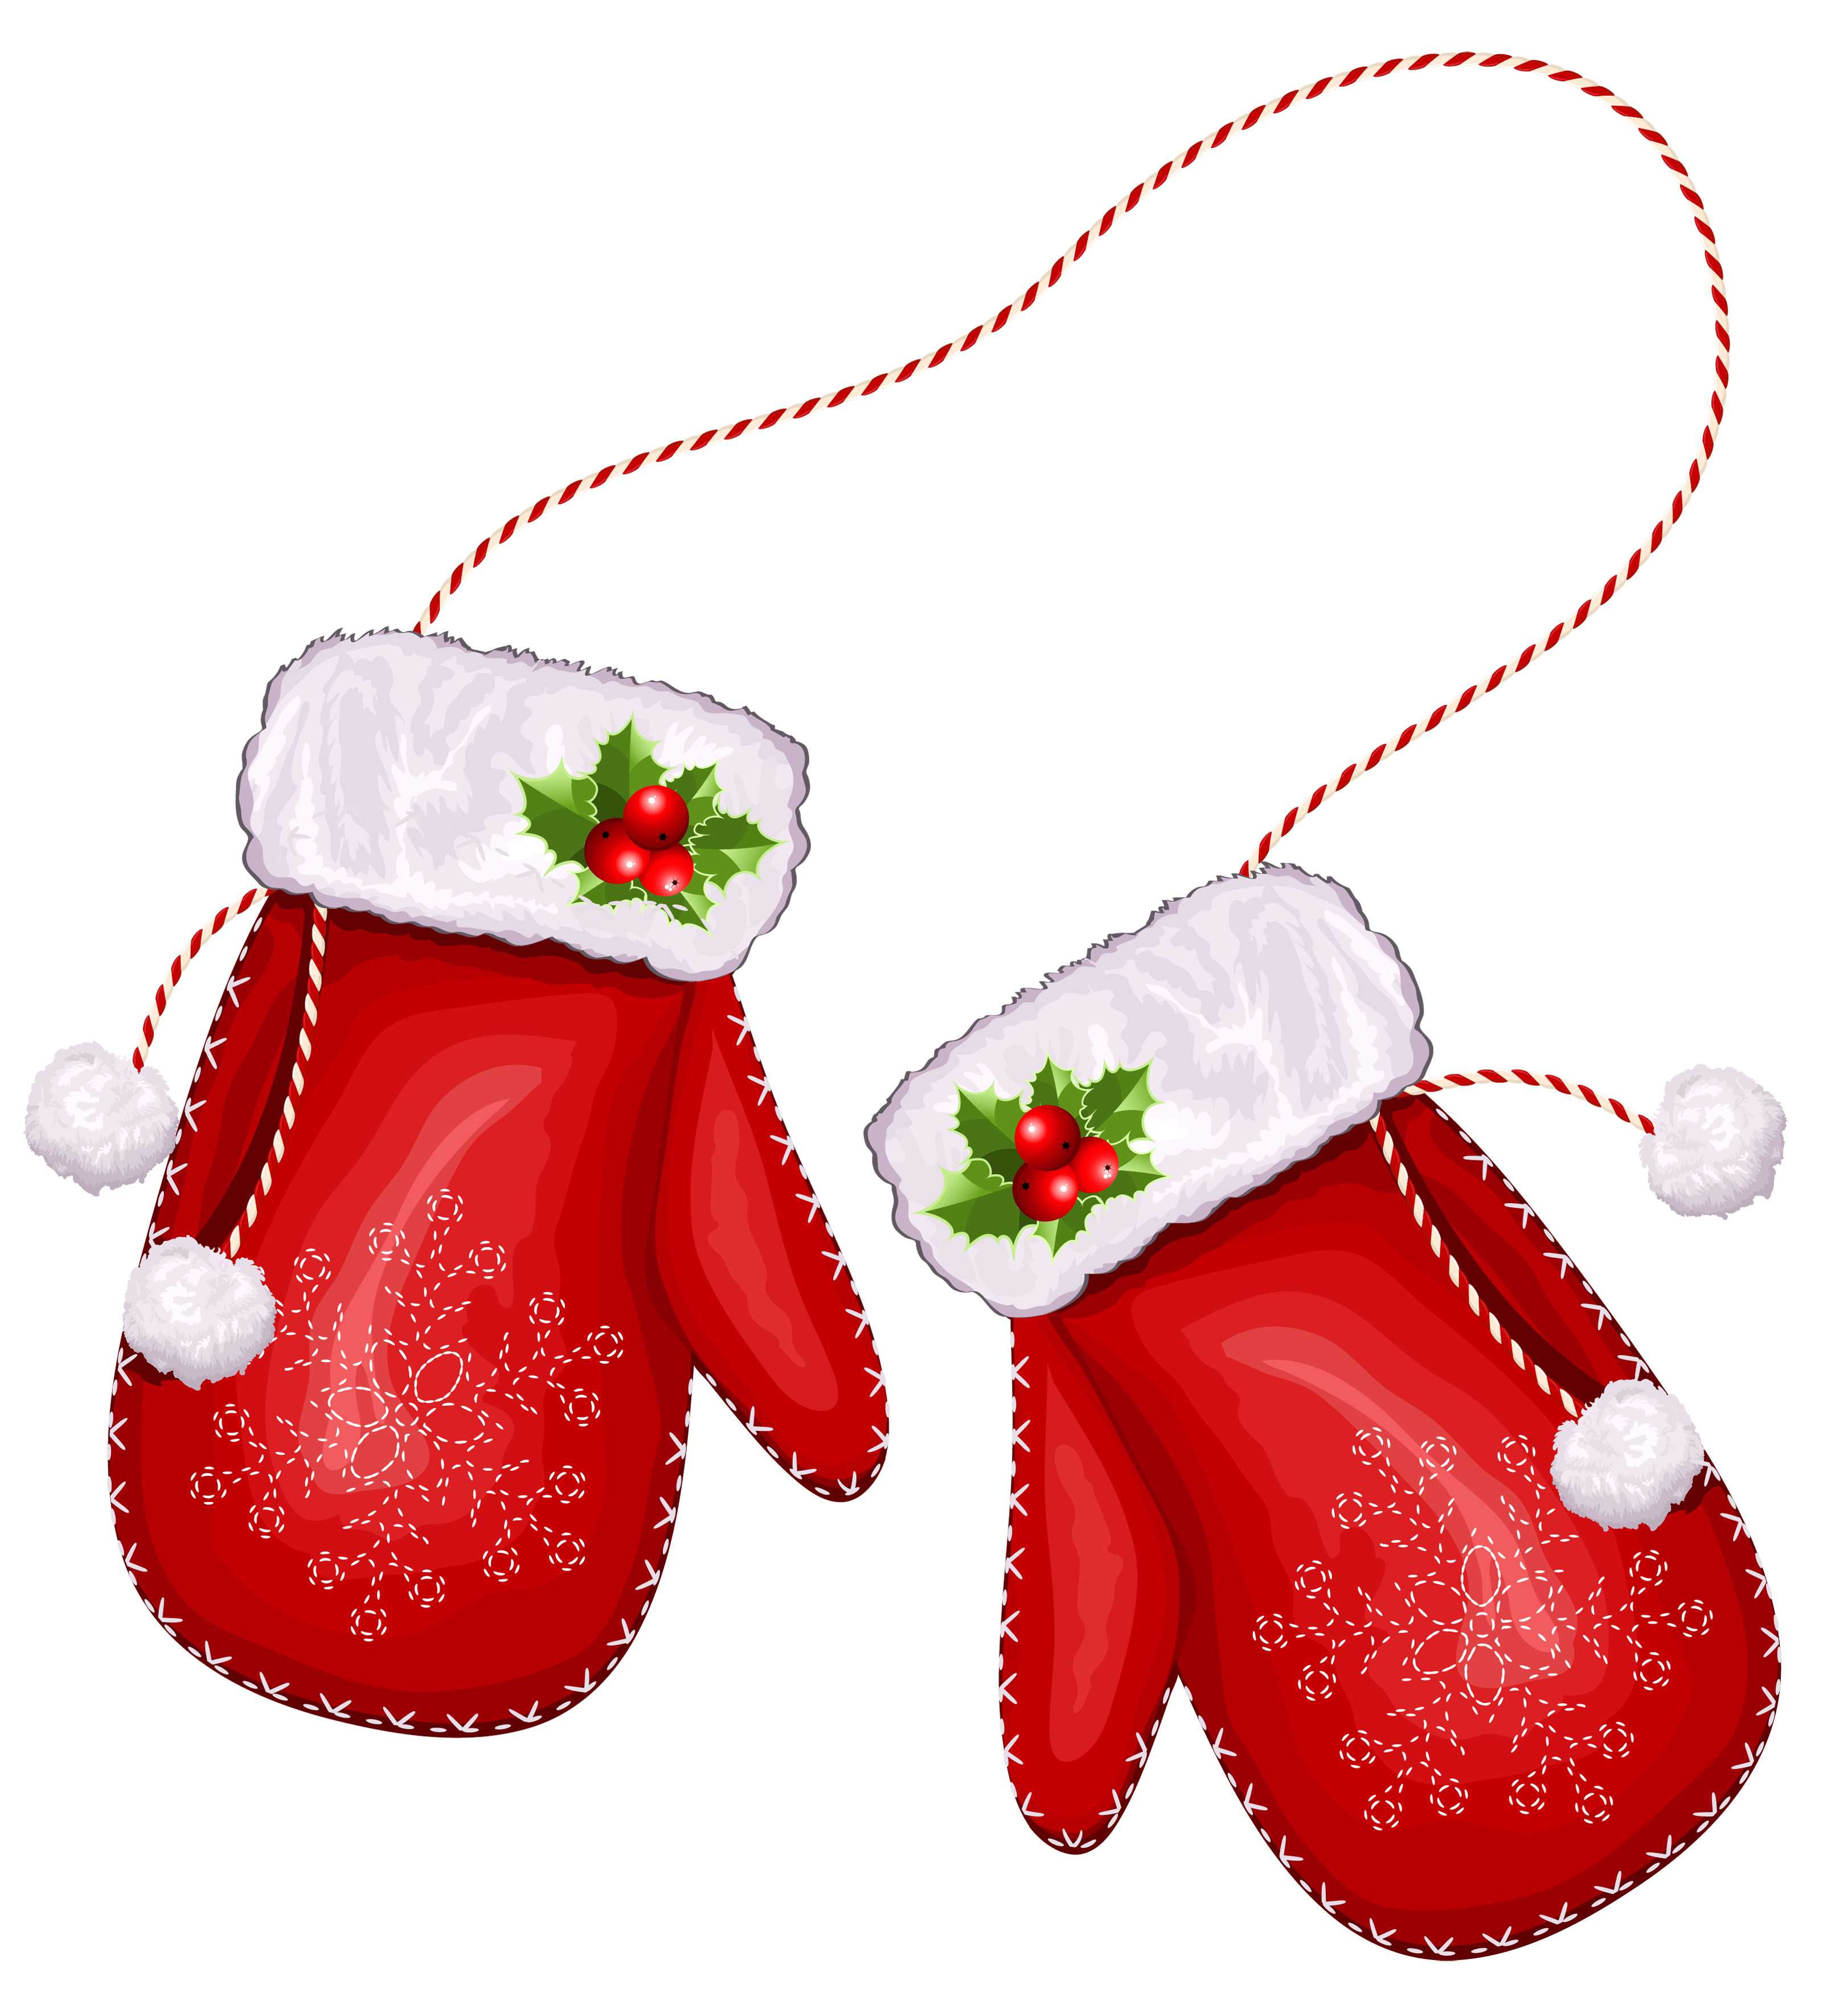 Christmas mittens clipart graphic free download 28+ Collection of Santa Gloves Clipart | High quality, free cliparts ... graphic free download